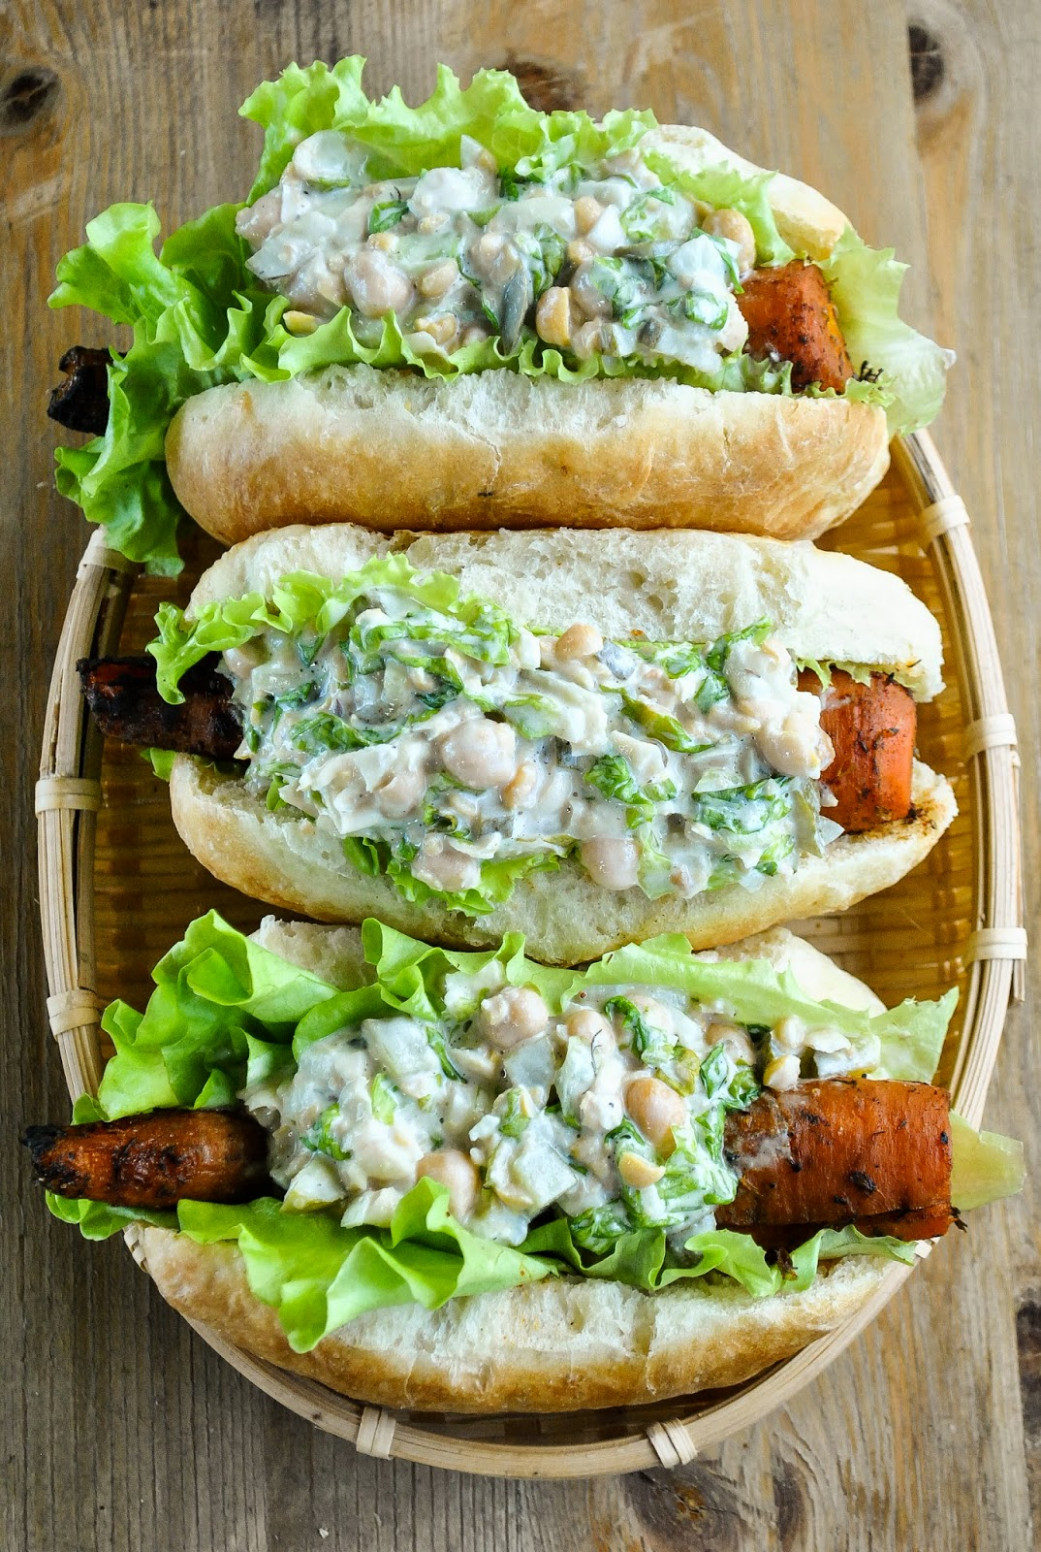 Smoky Barbecue Carrot Hot Dogs With Creamy Chickpea Salad ..